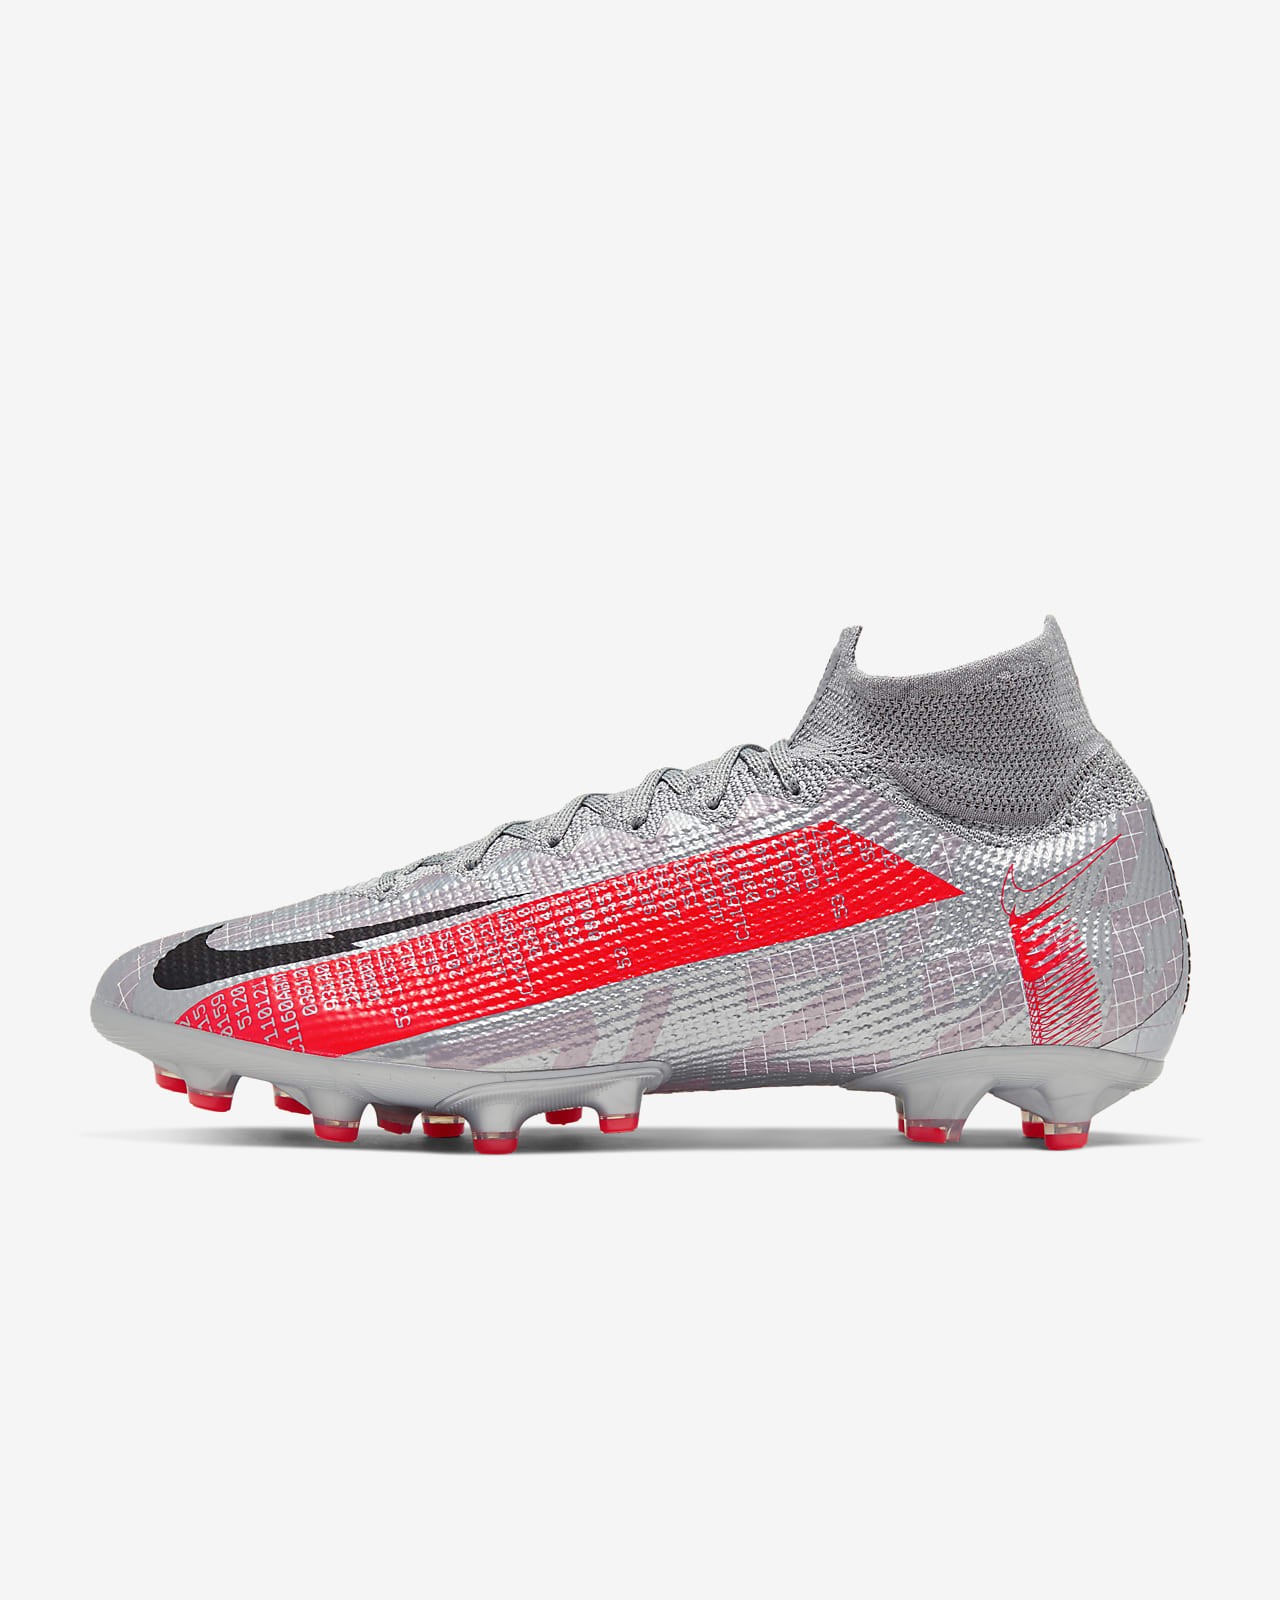 Nike Mercurial Superfly 7 Elite AG-PRO Artificial-Grass Football Boot